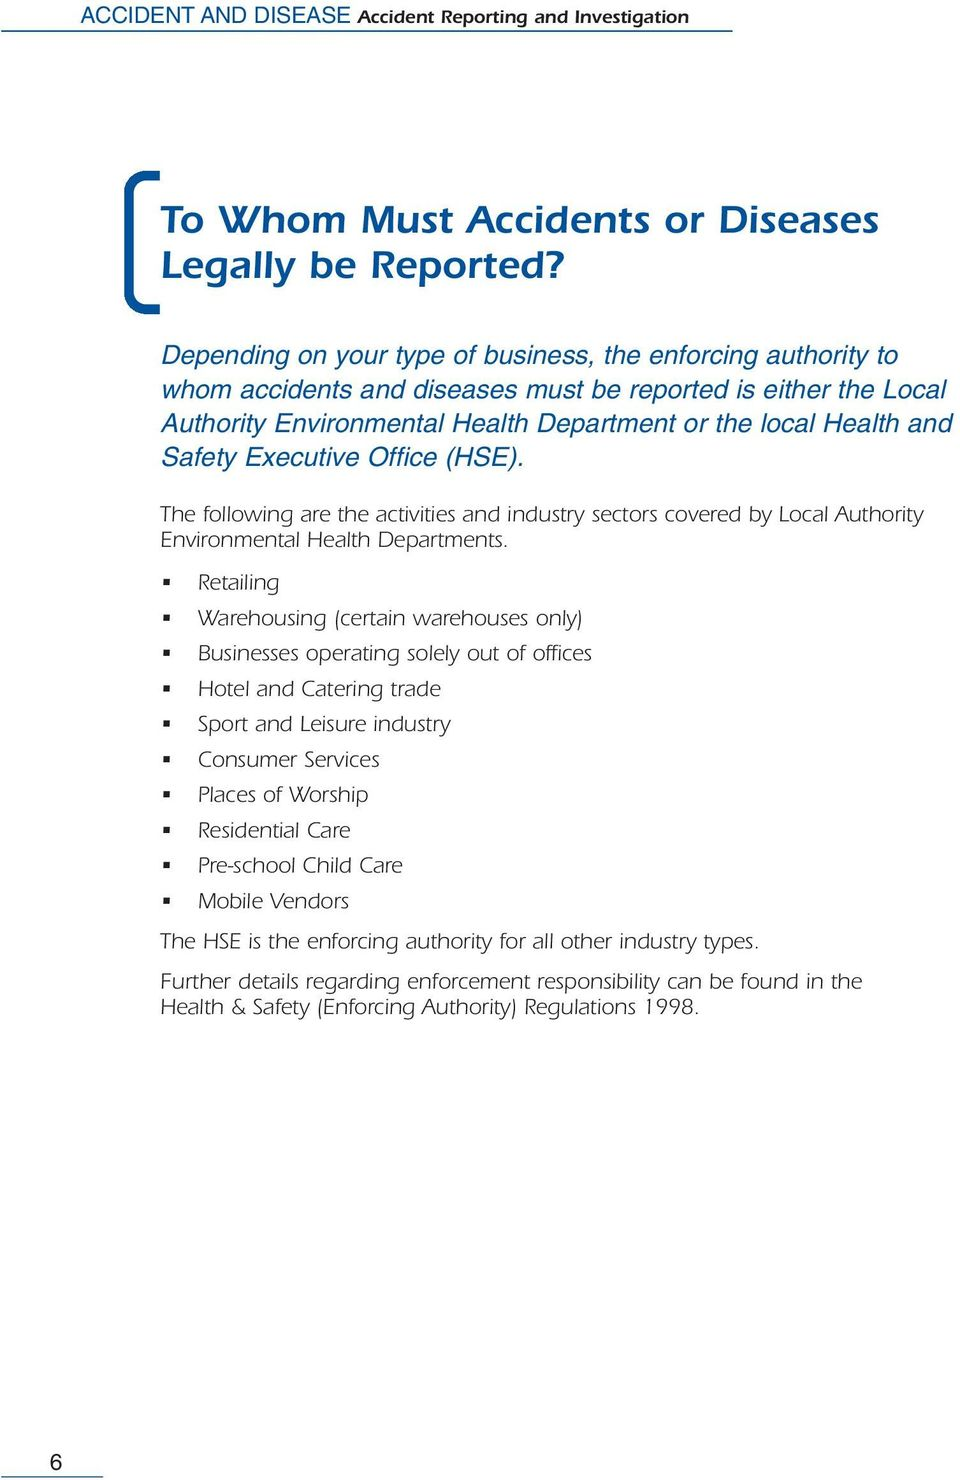 Safety Executive Office (HSE). The following are the activities and industry sectors covered by Local Authority Environmental Health Departments.